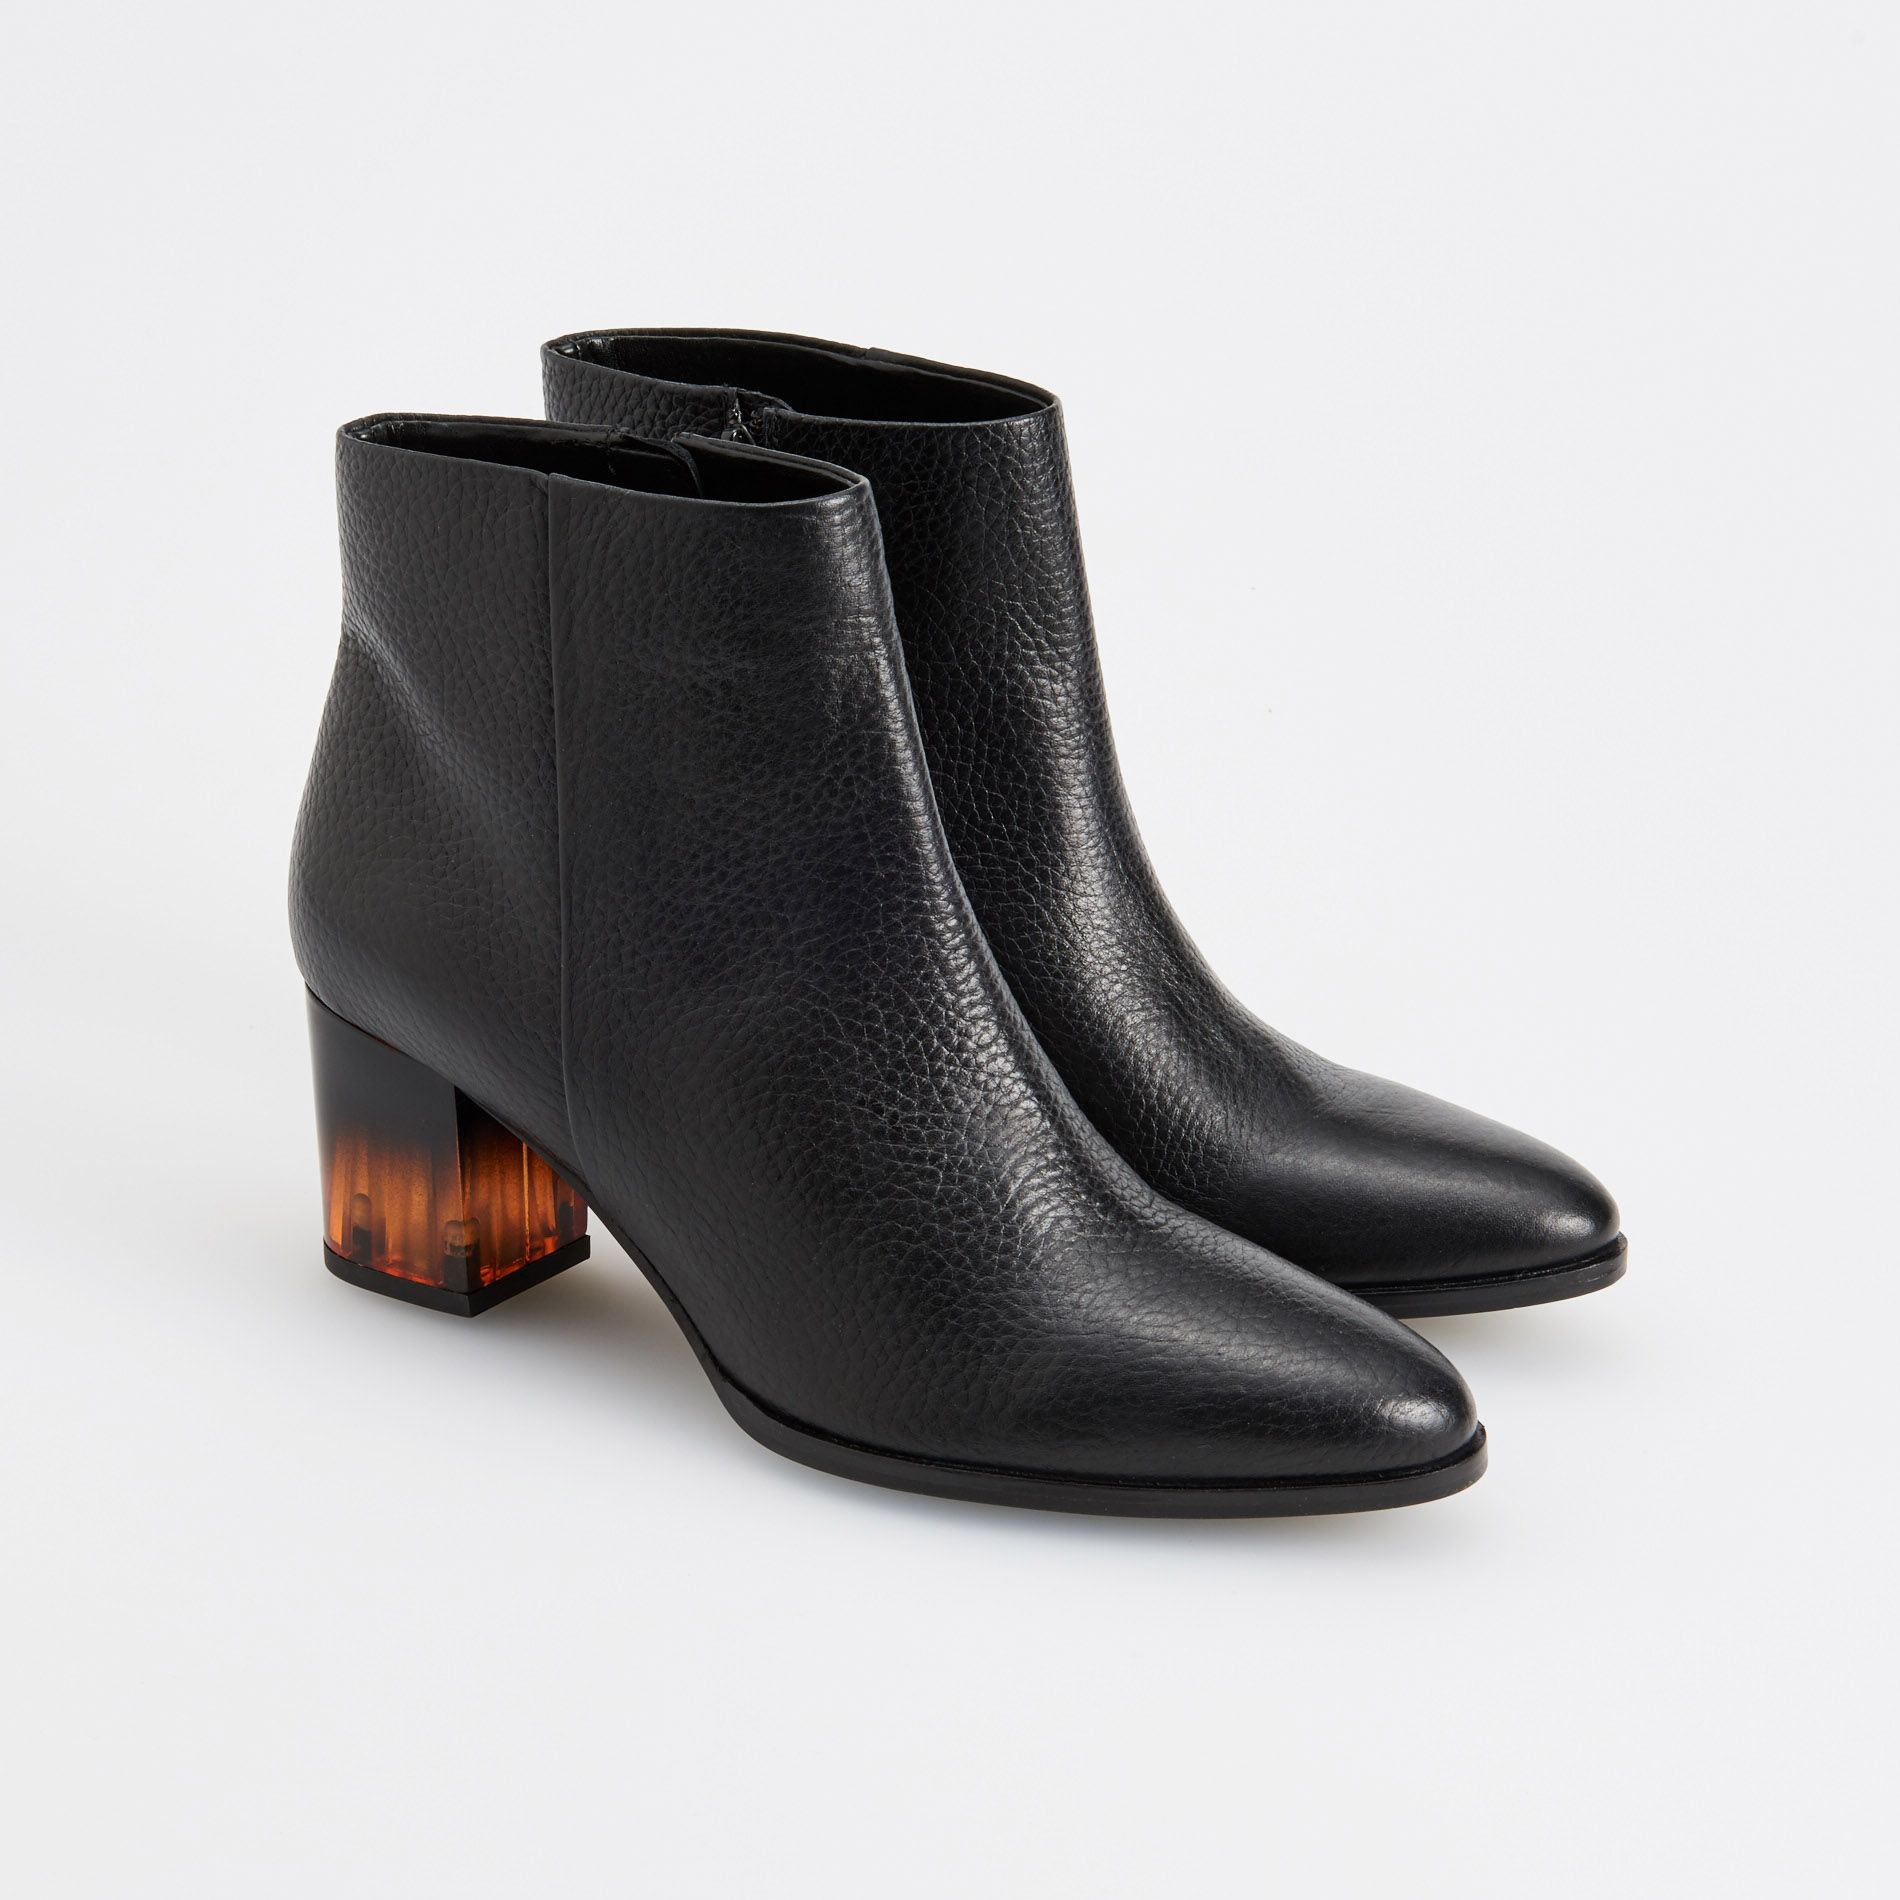 Skorzane Botki Reserved Leather Ankle Boots Boots Shoes